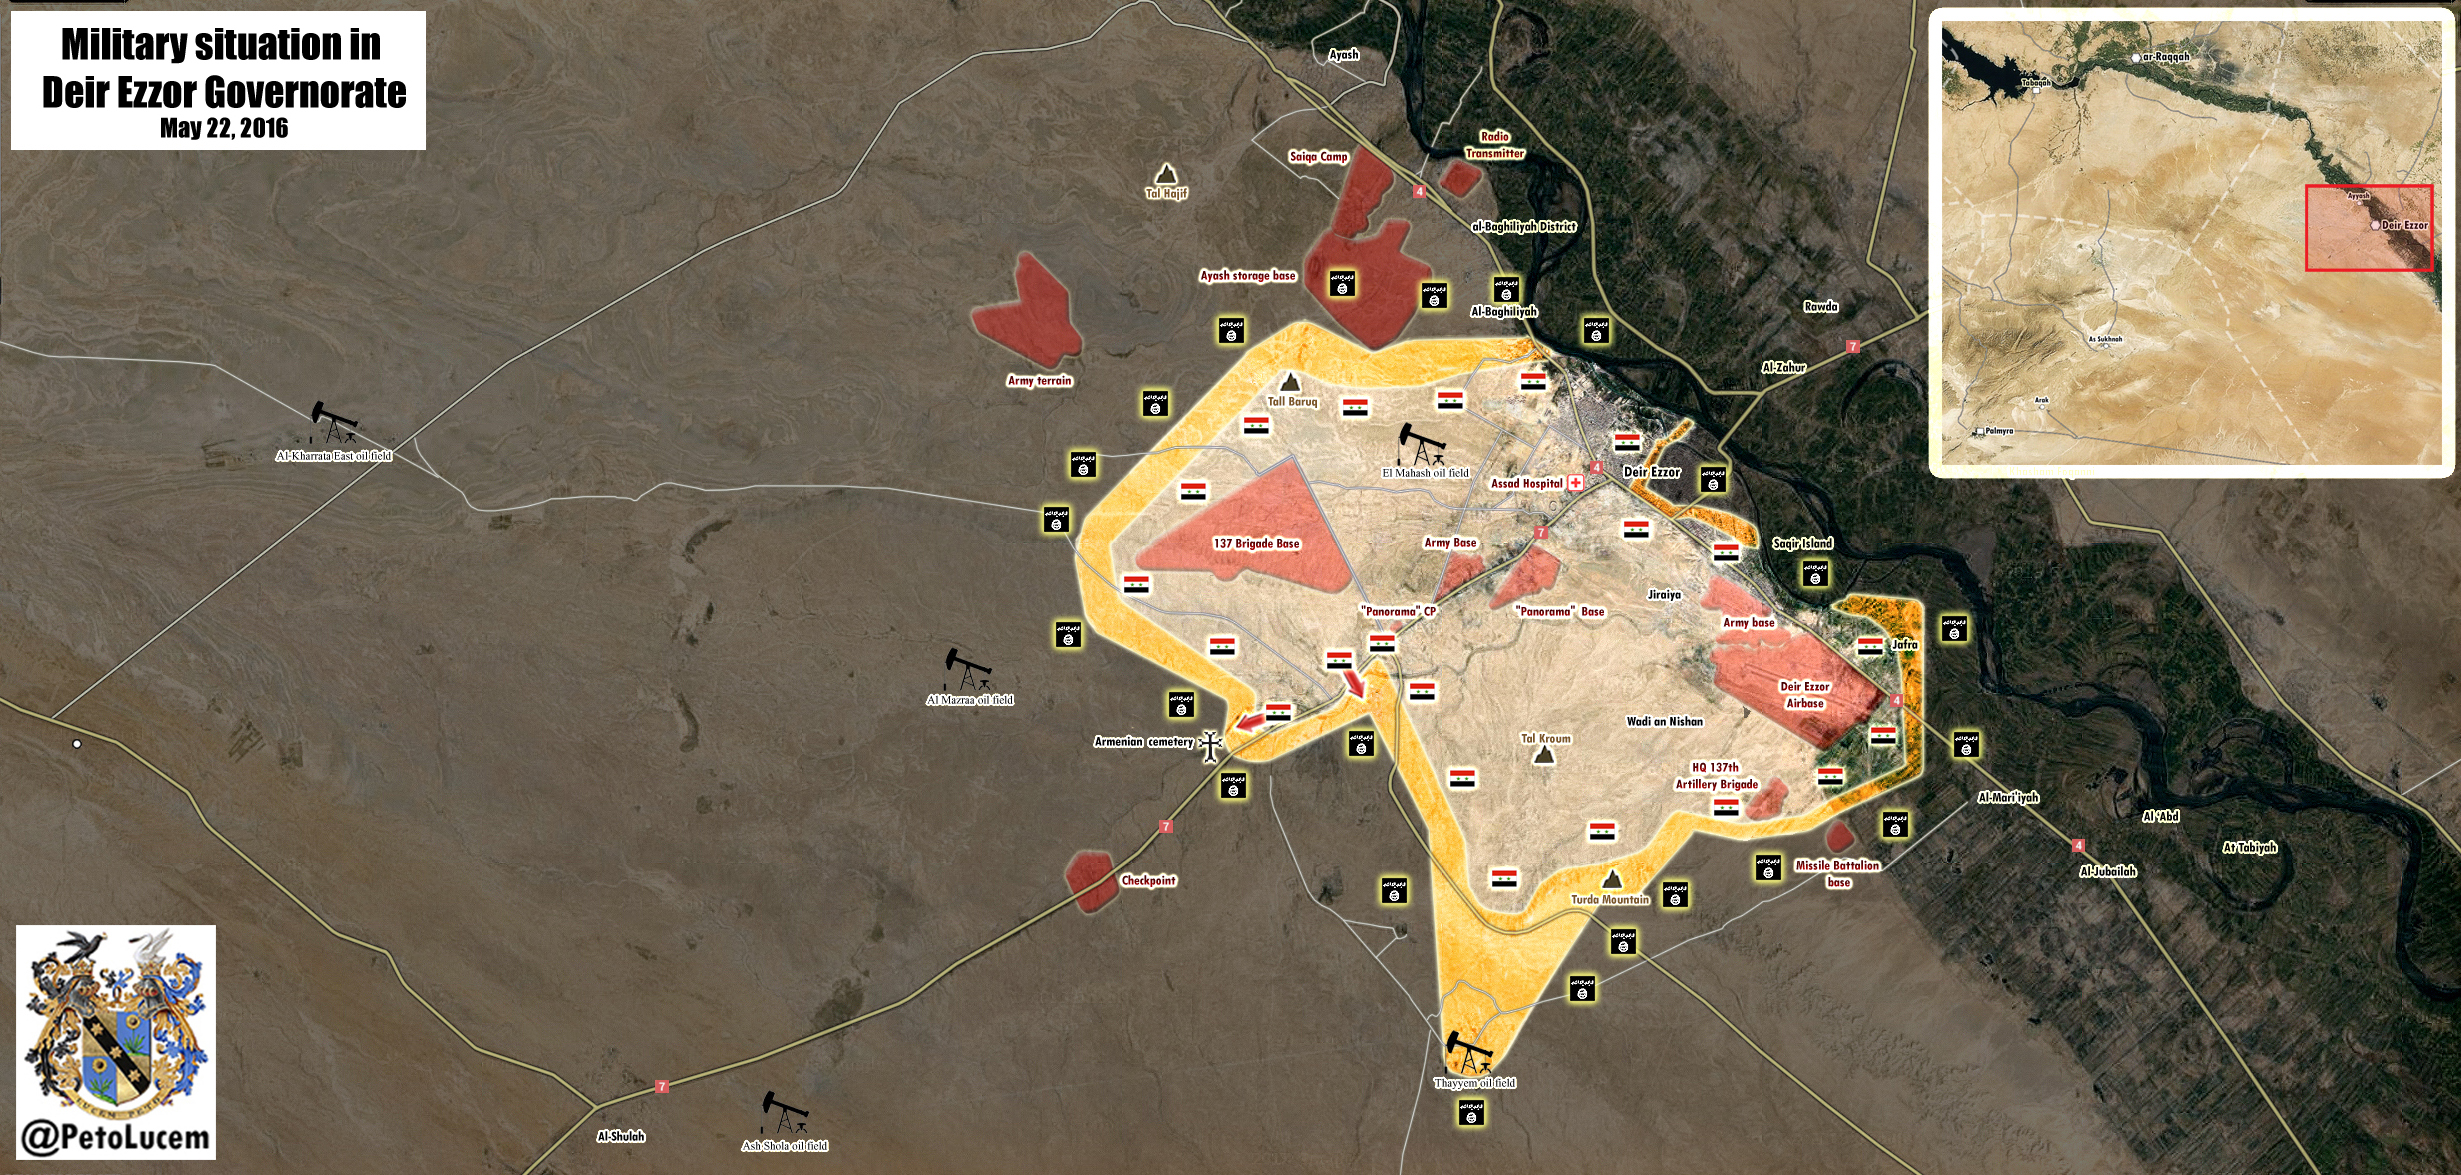 Military Situation in Deir Ezzor, Syria on May 22